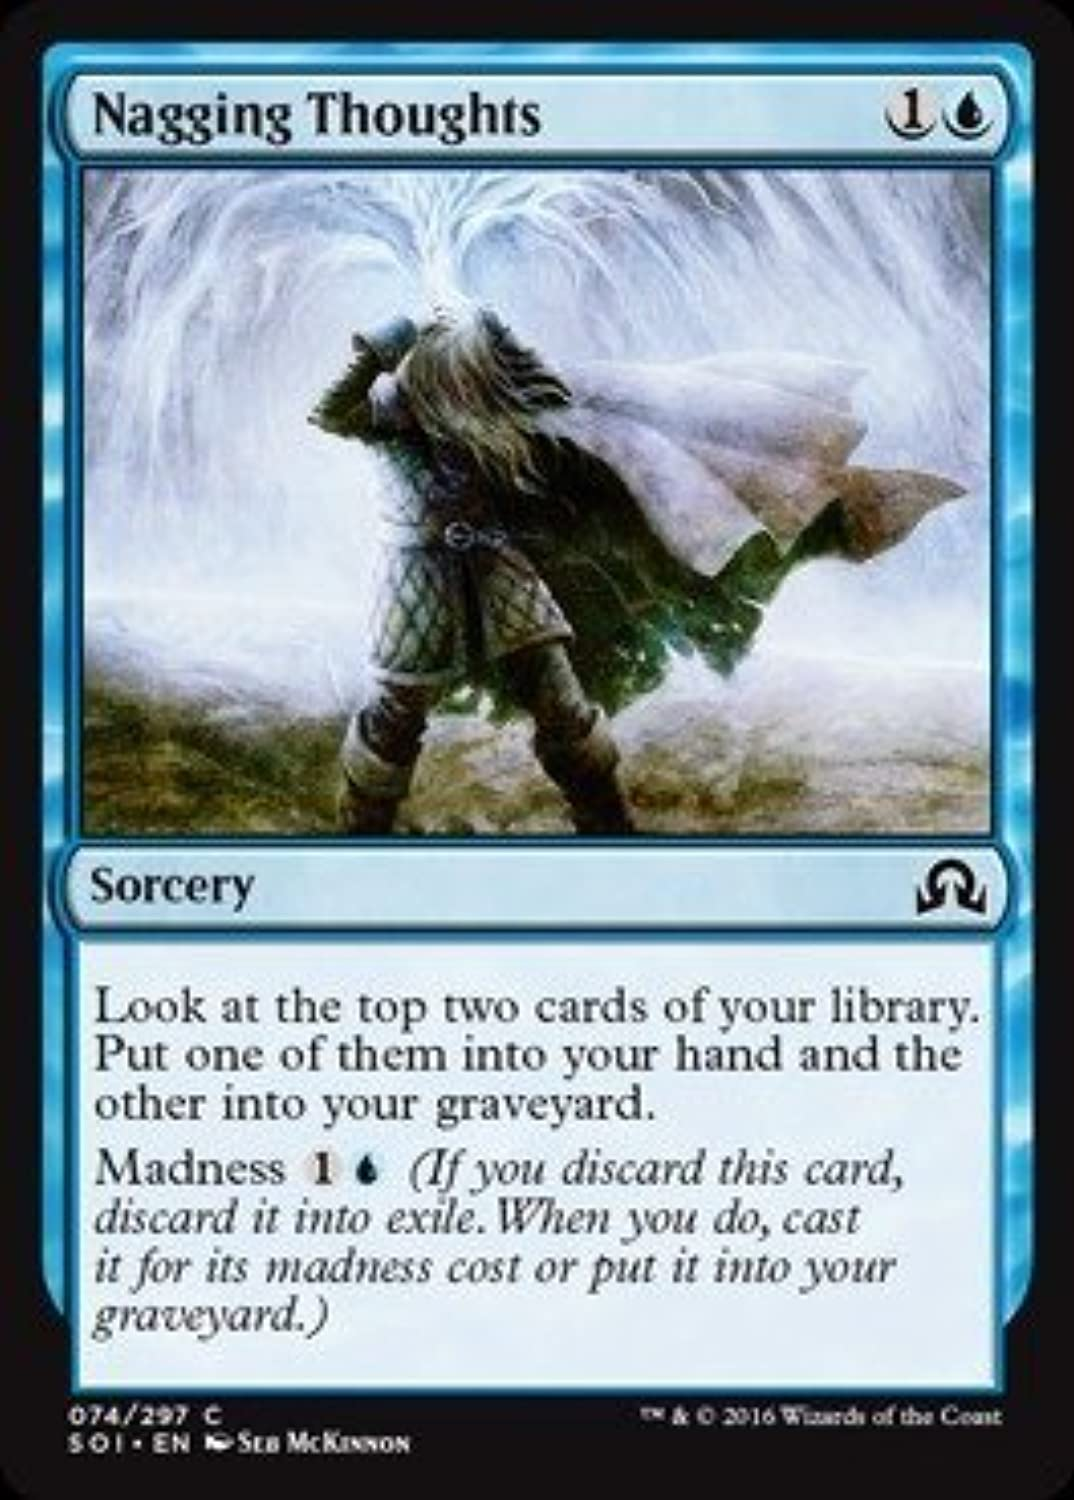 Magic  the Gathering - Nagging Thoughts (074 297) - Shadows Over Innistrad by Magic  the Gathering B01GDP98NU Tadellos    Deutschland Frankfurt